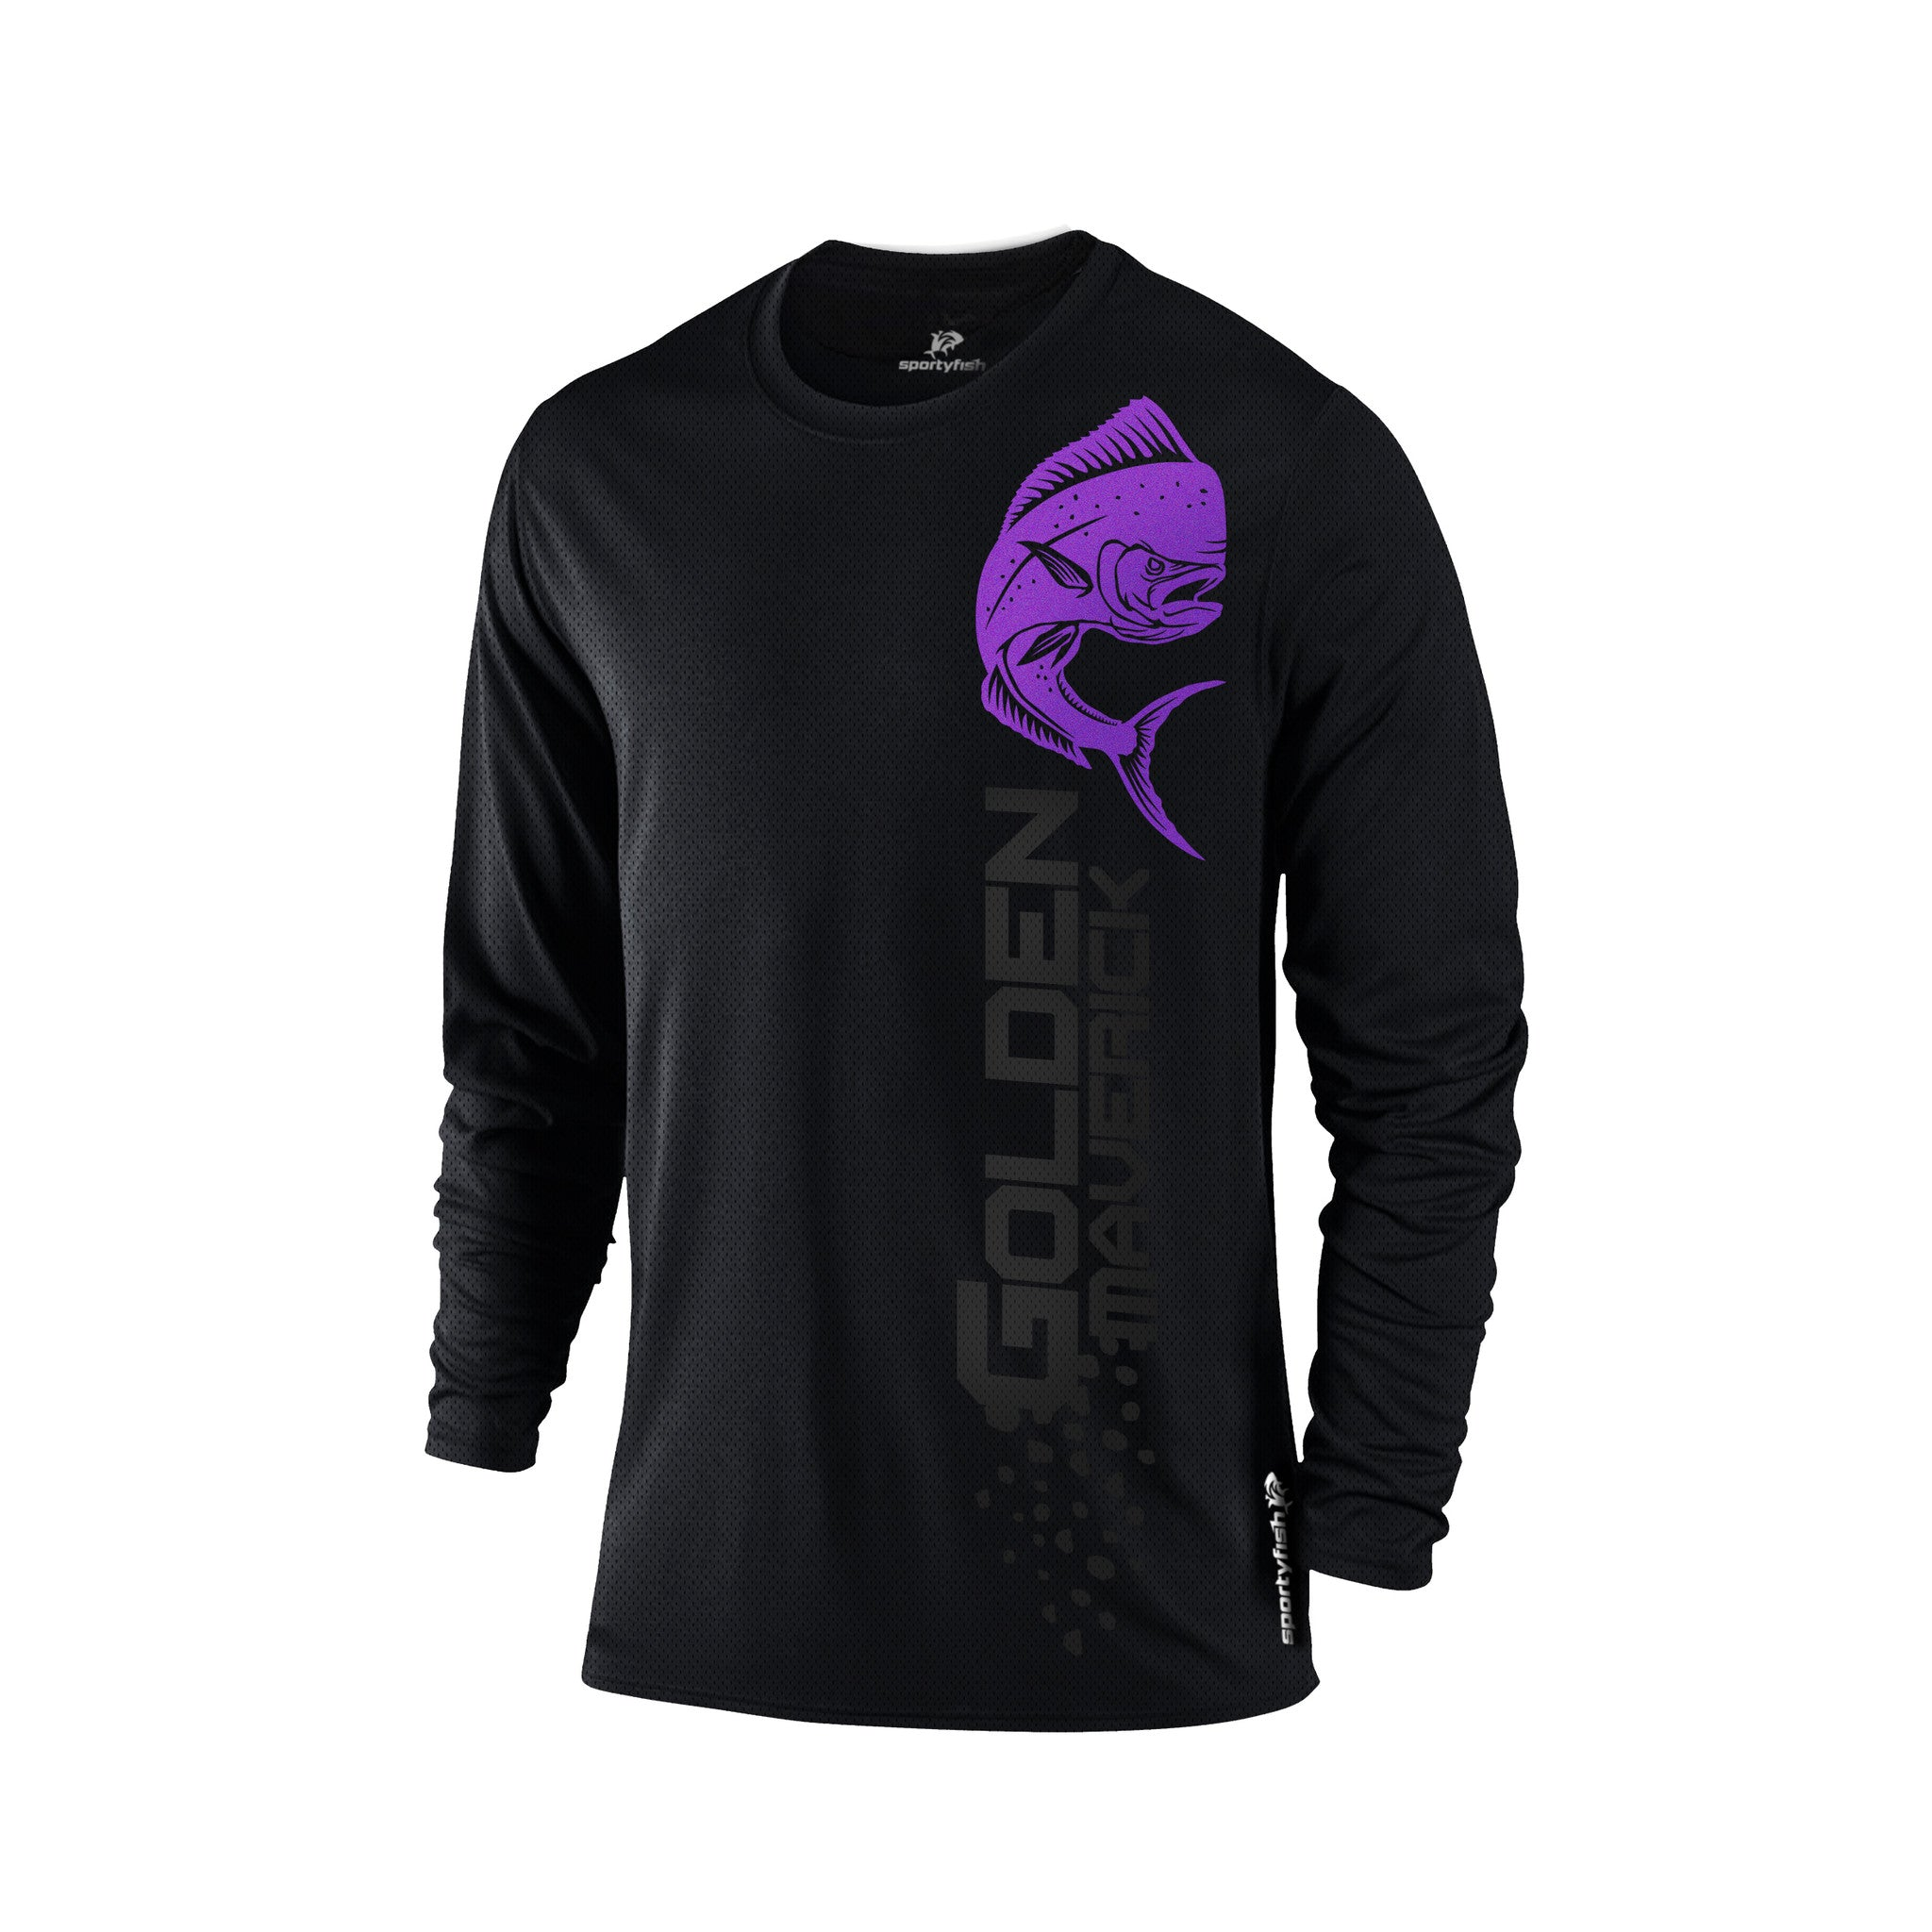 SportyFish Black Series Long-sleeves T-shirt(front view): Mahi-mahi